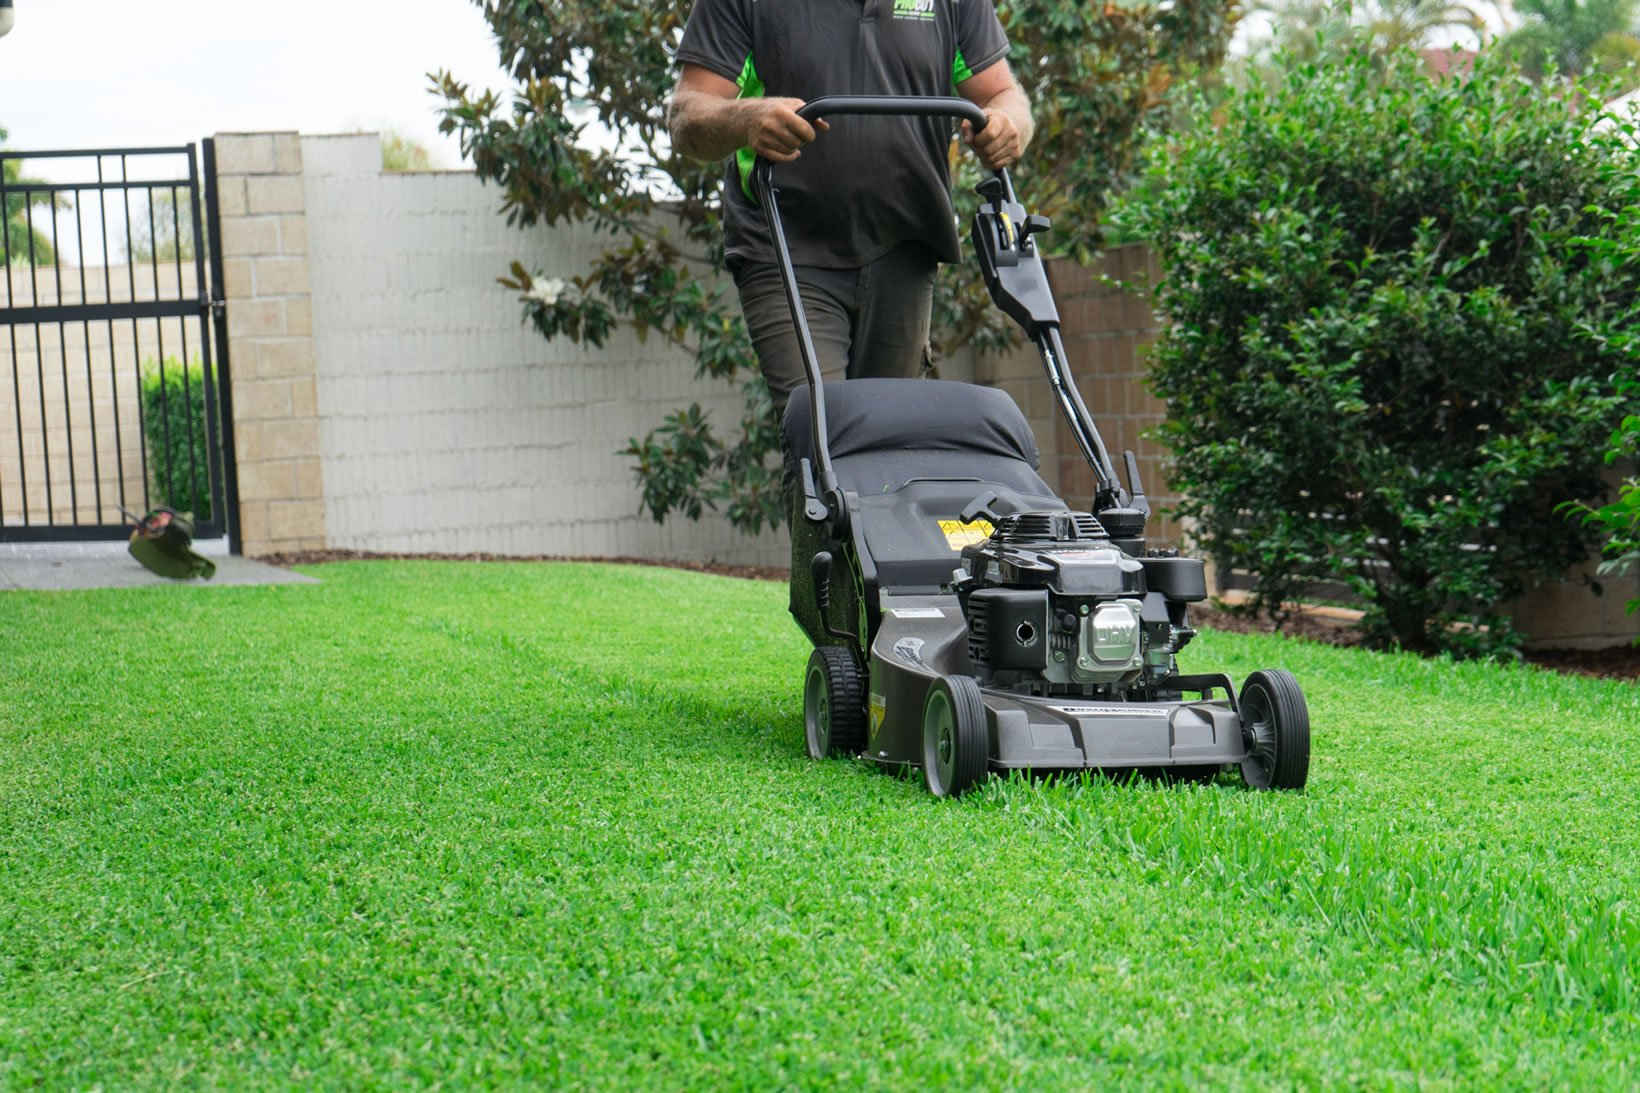 pro cut lawns operator pushing a lawn mower